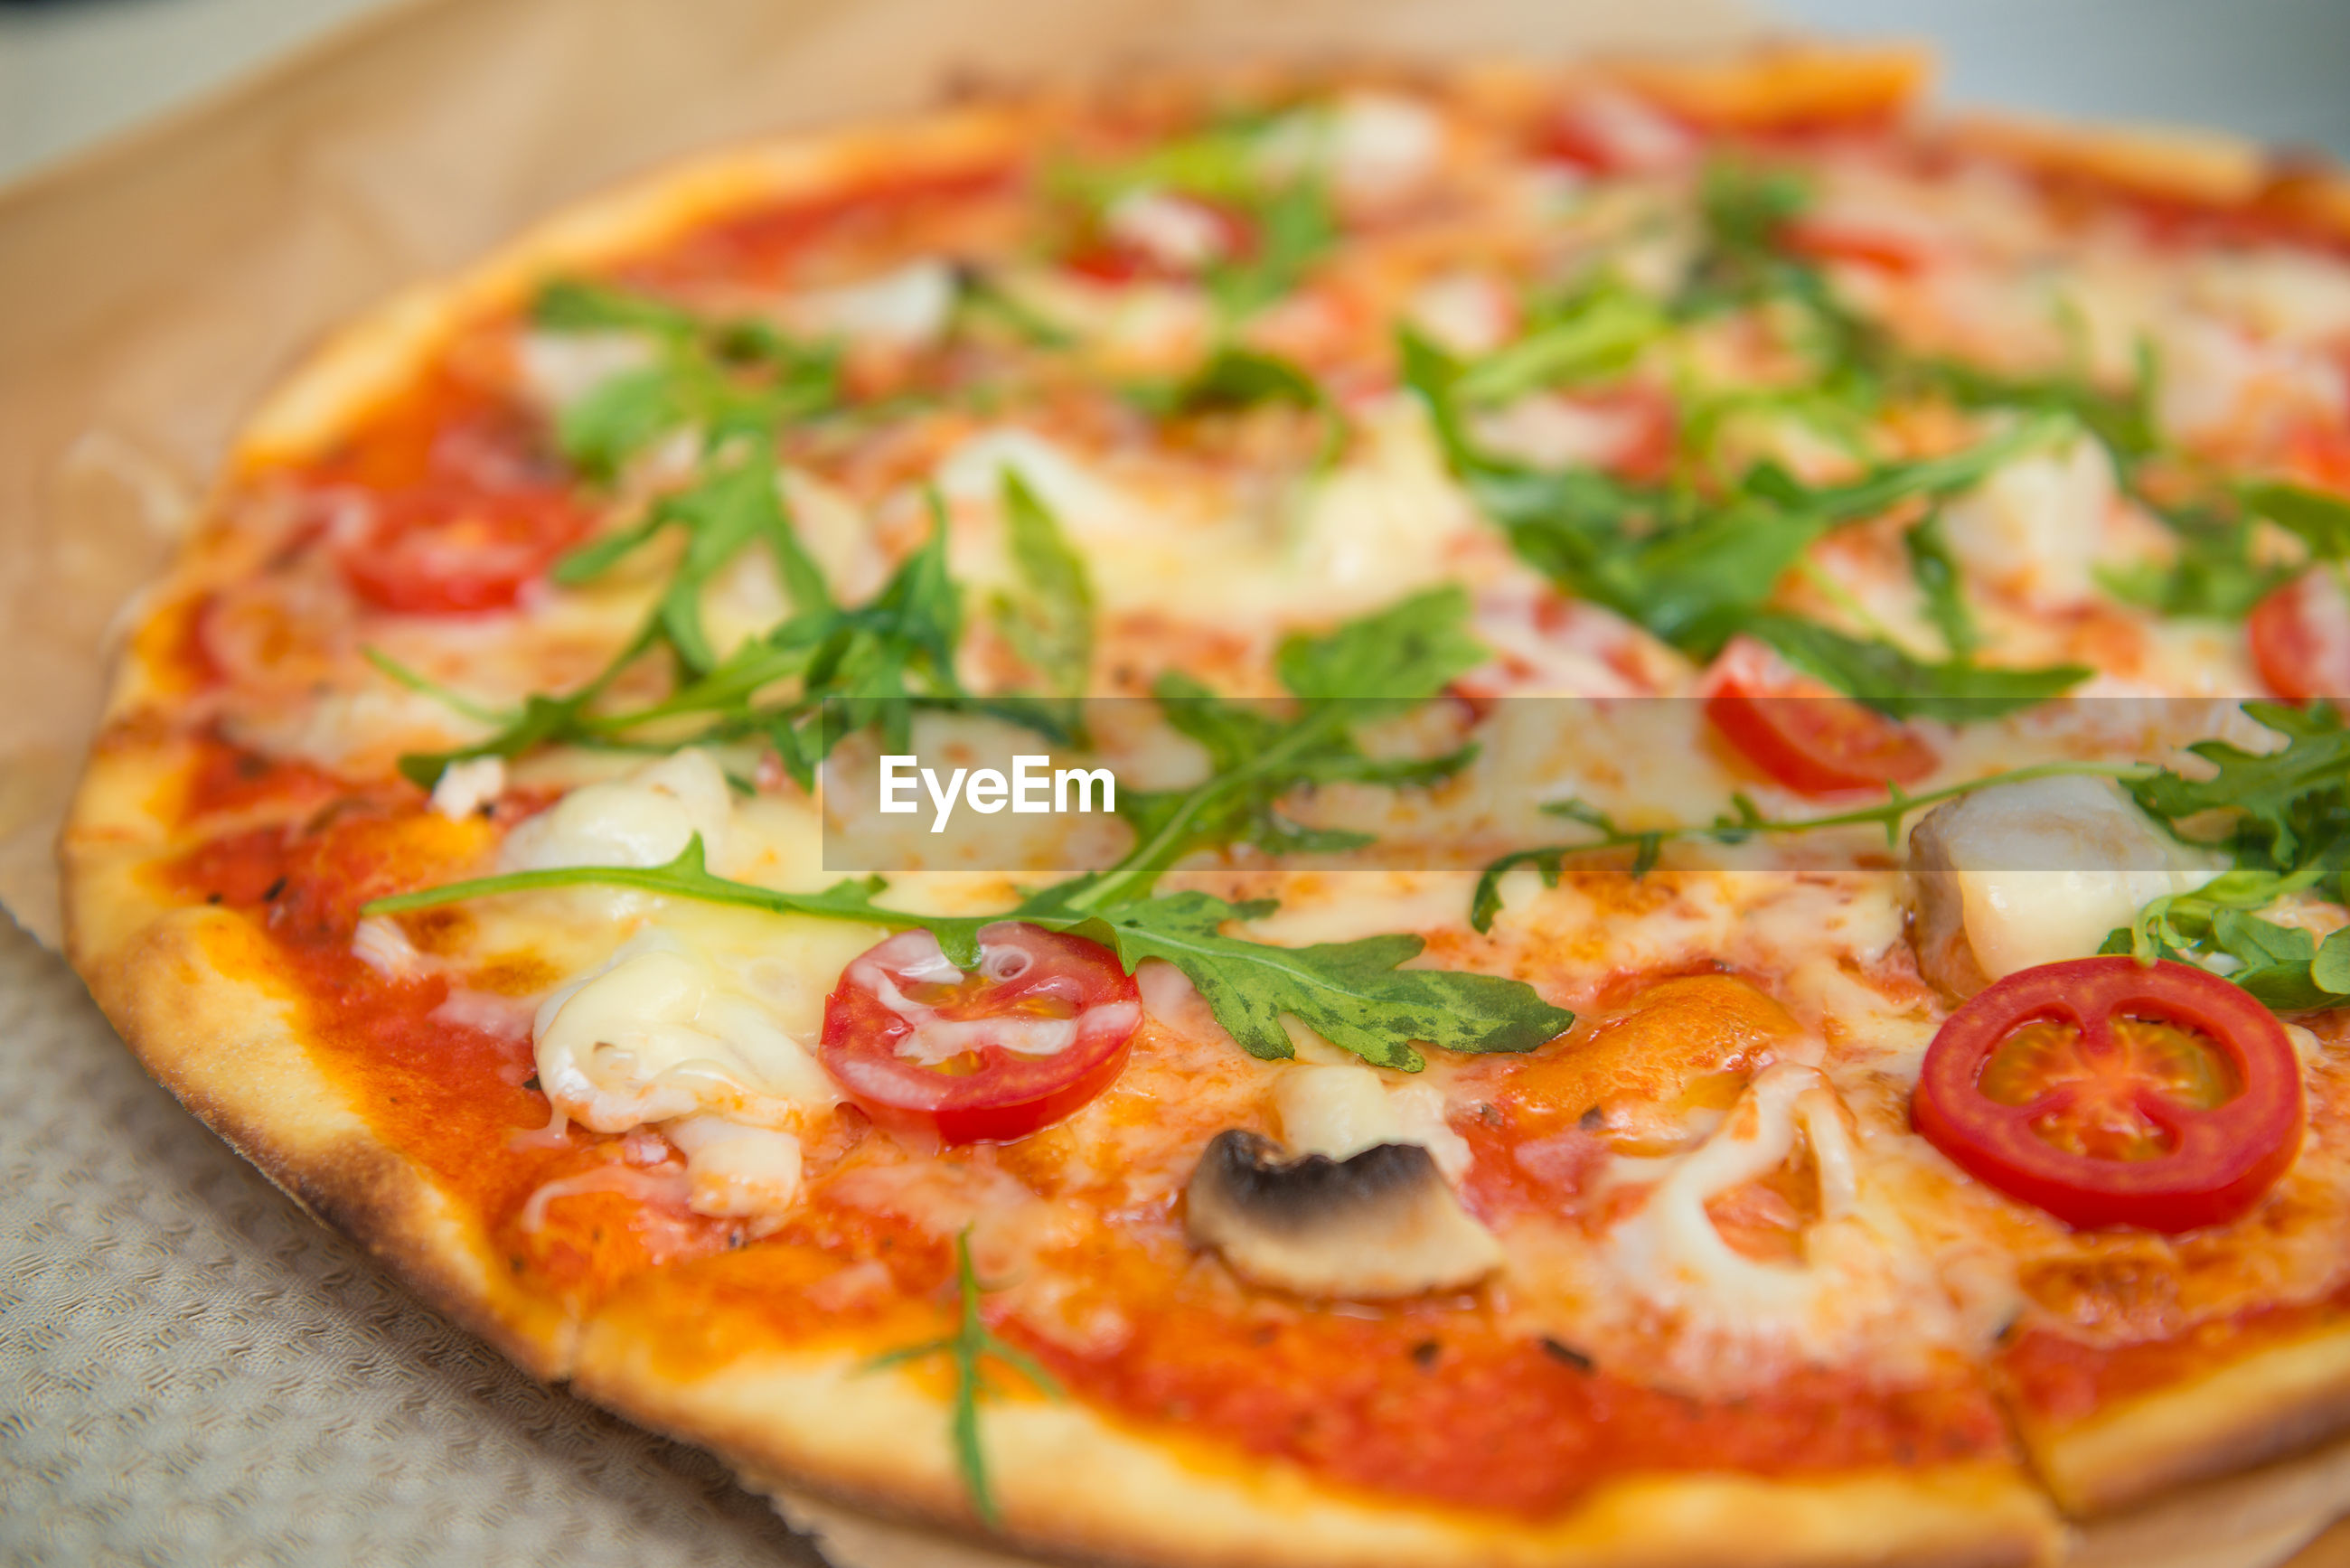 CLOSE-UP OF PIZZA SERVED ON PLATE